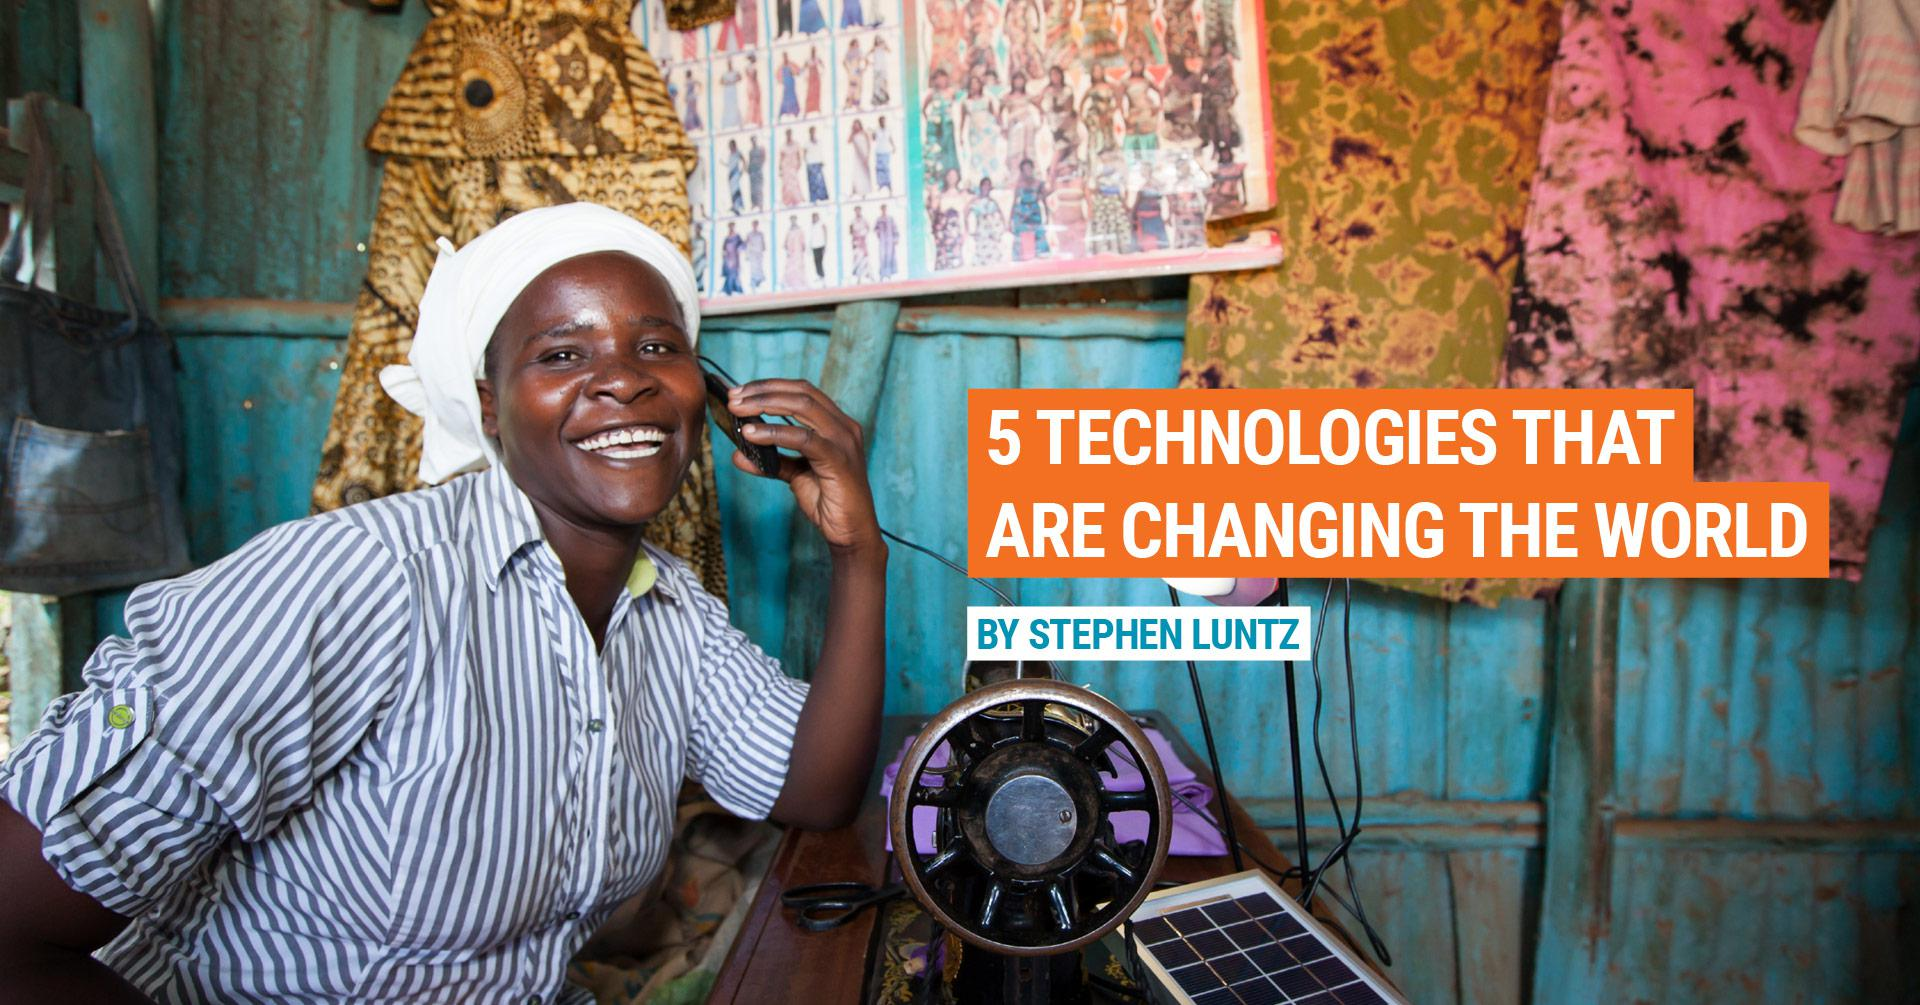 5 technologies that are changing the world by Stephen Luntz